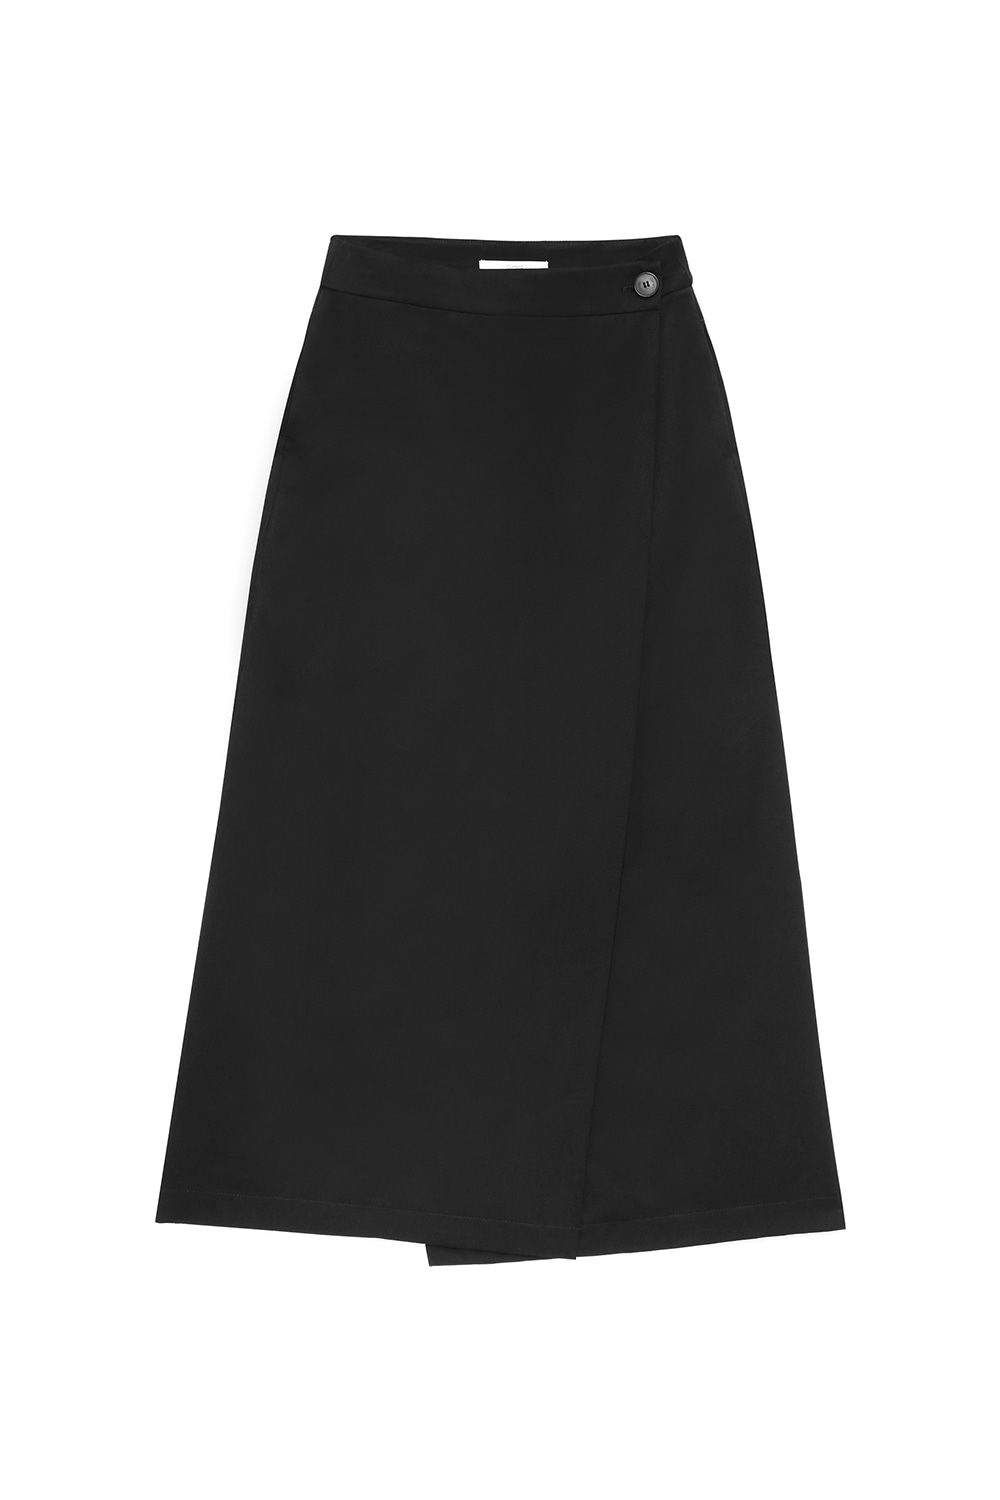 Long Wrap Skirts Women [Black] -50%